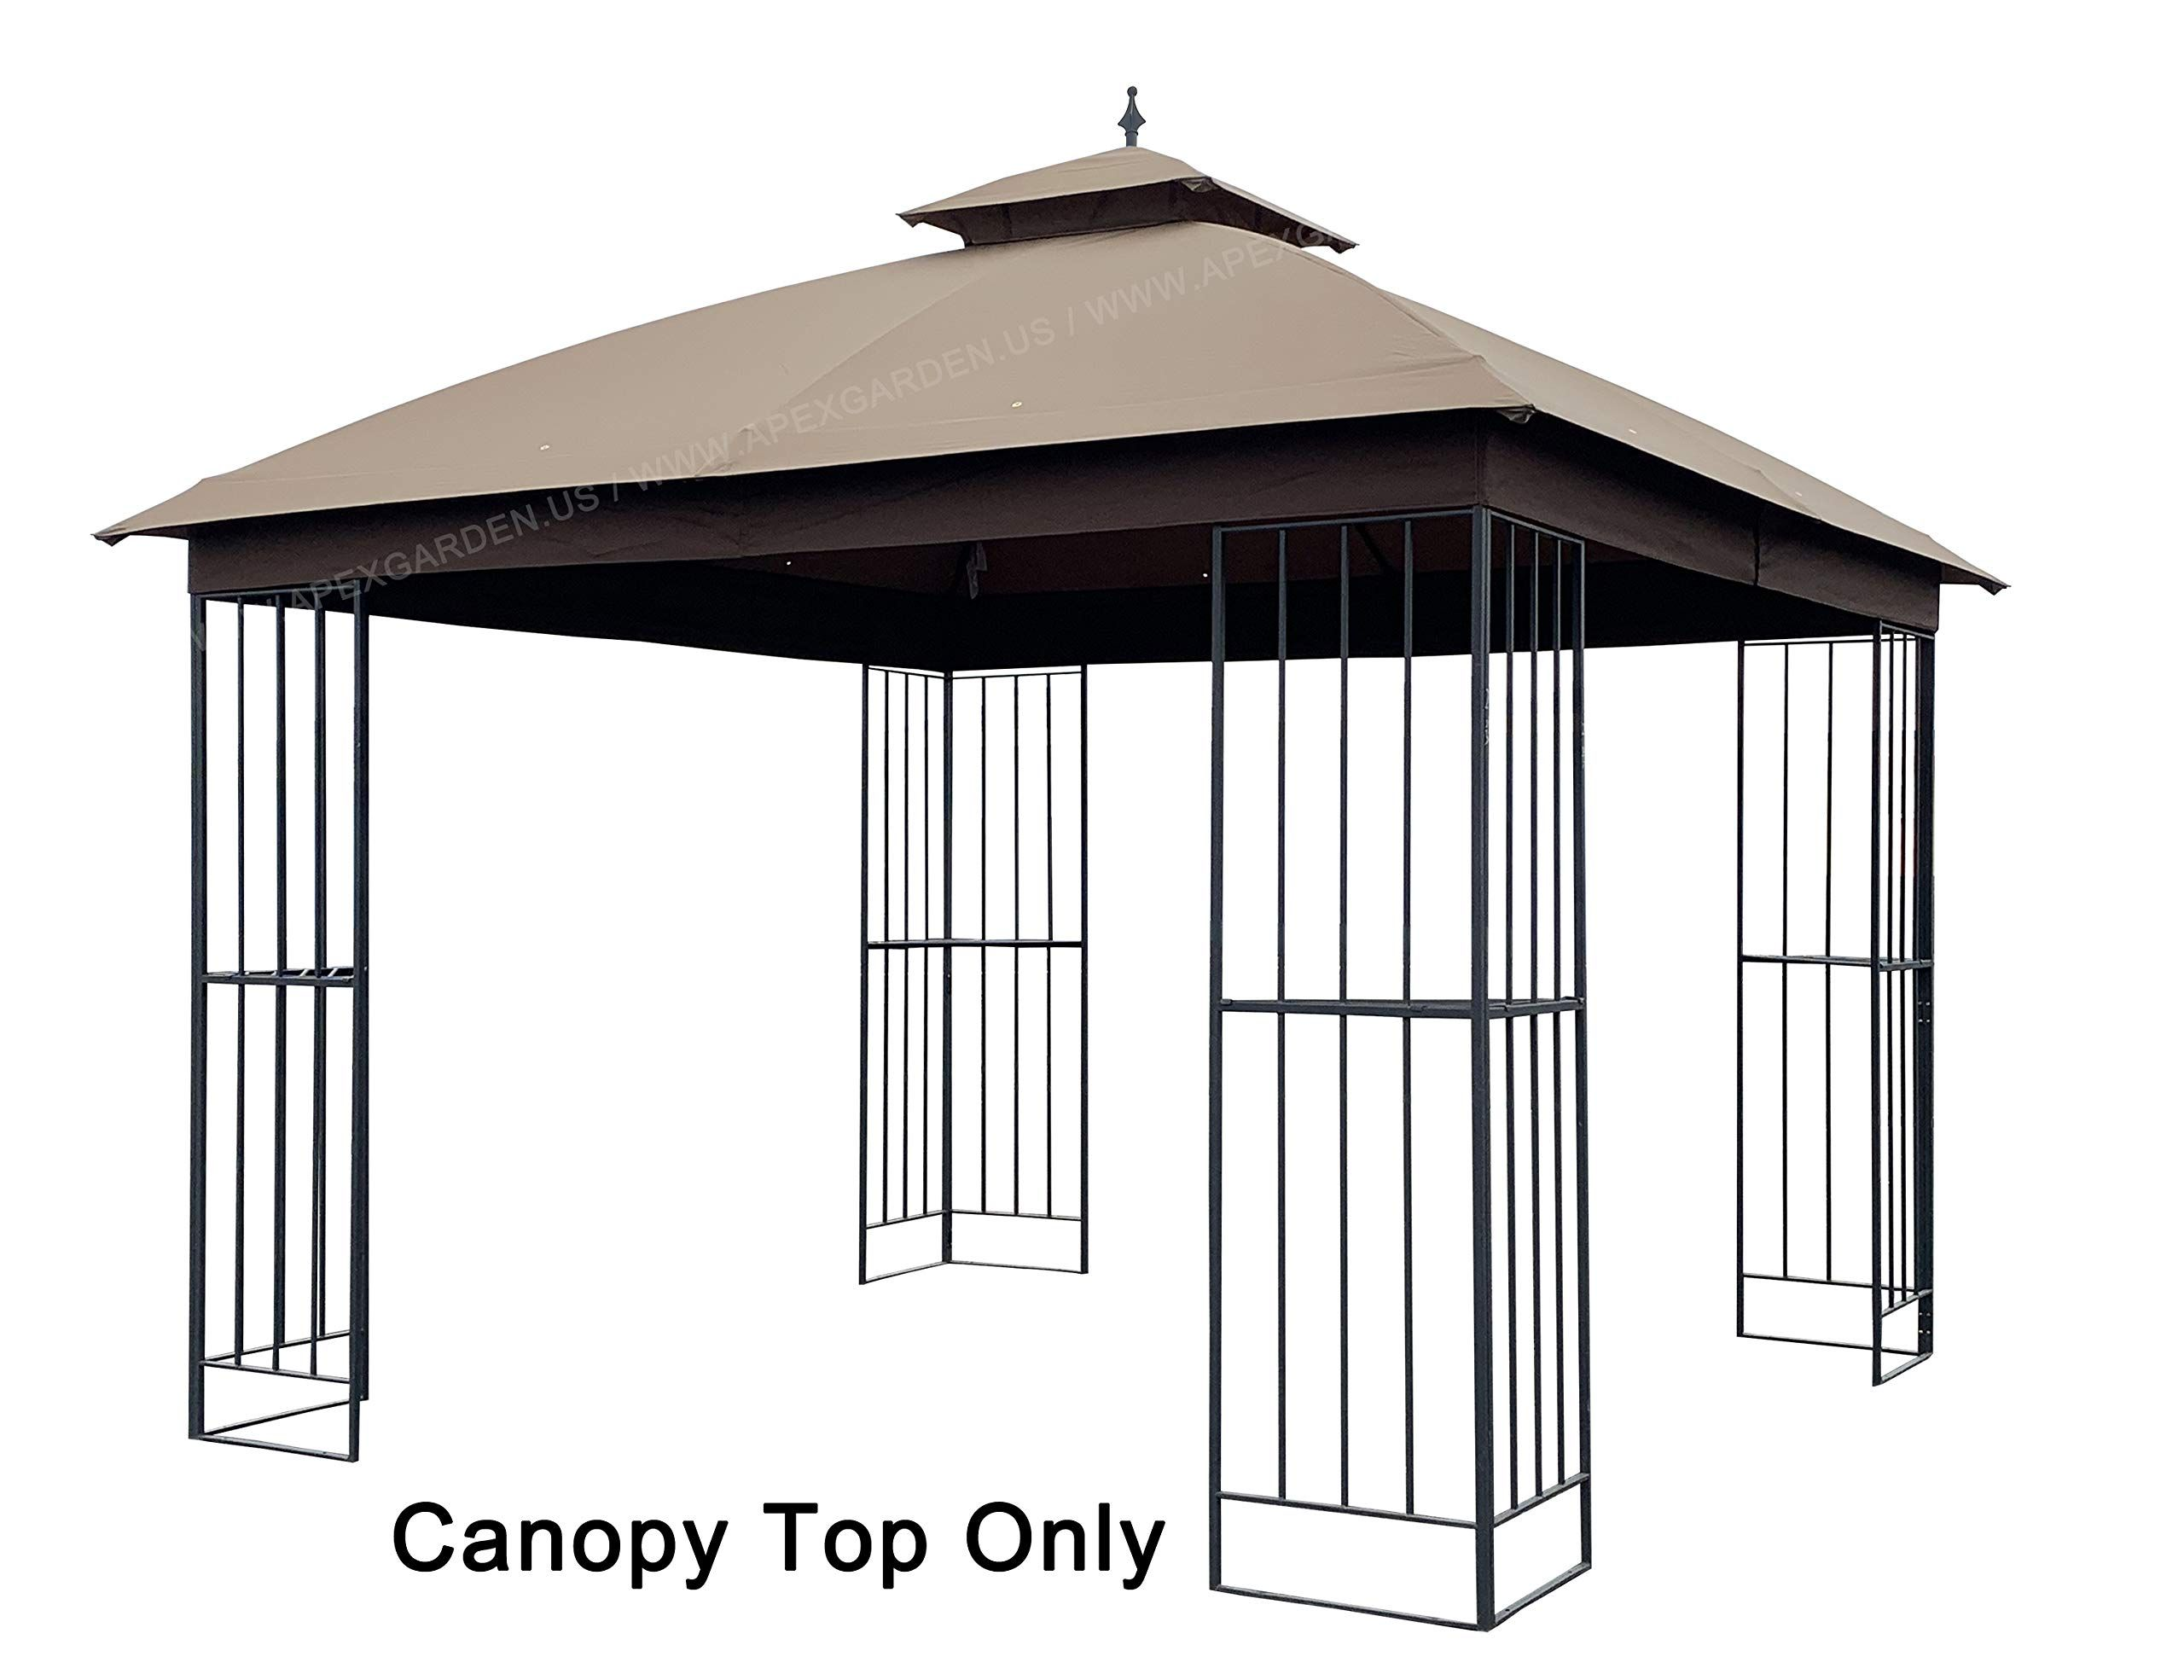 Sunjoy Black Steel Square Gazebo Exterior 10 89 Ft X 10 89 Ft Foundation 10 Ft X 10 Feet Lowes Com Gazebo Sale Gazebo Permanent Gazebo